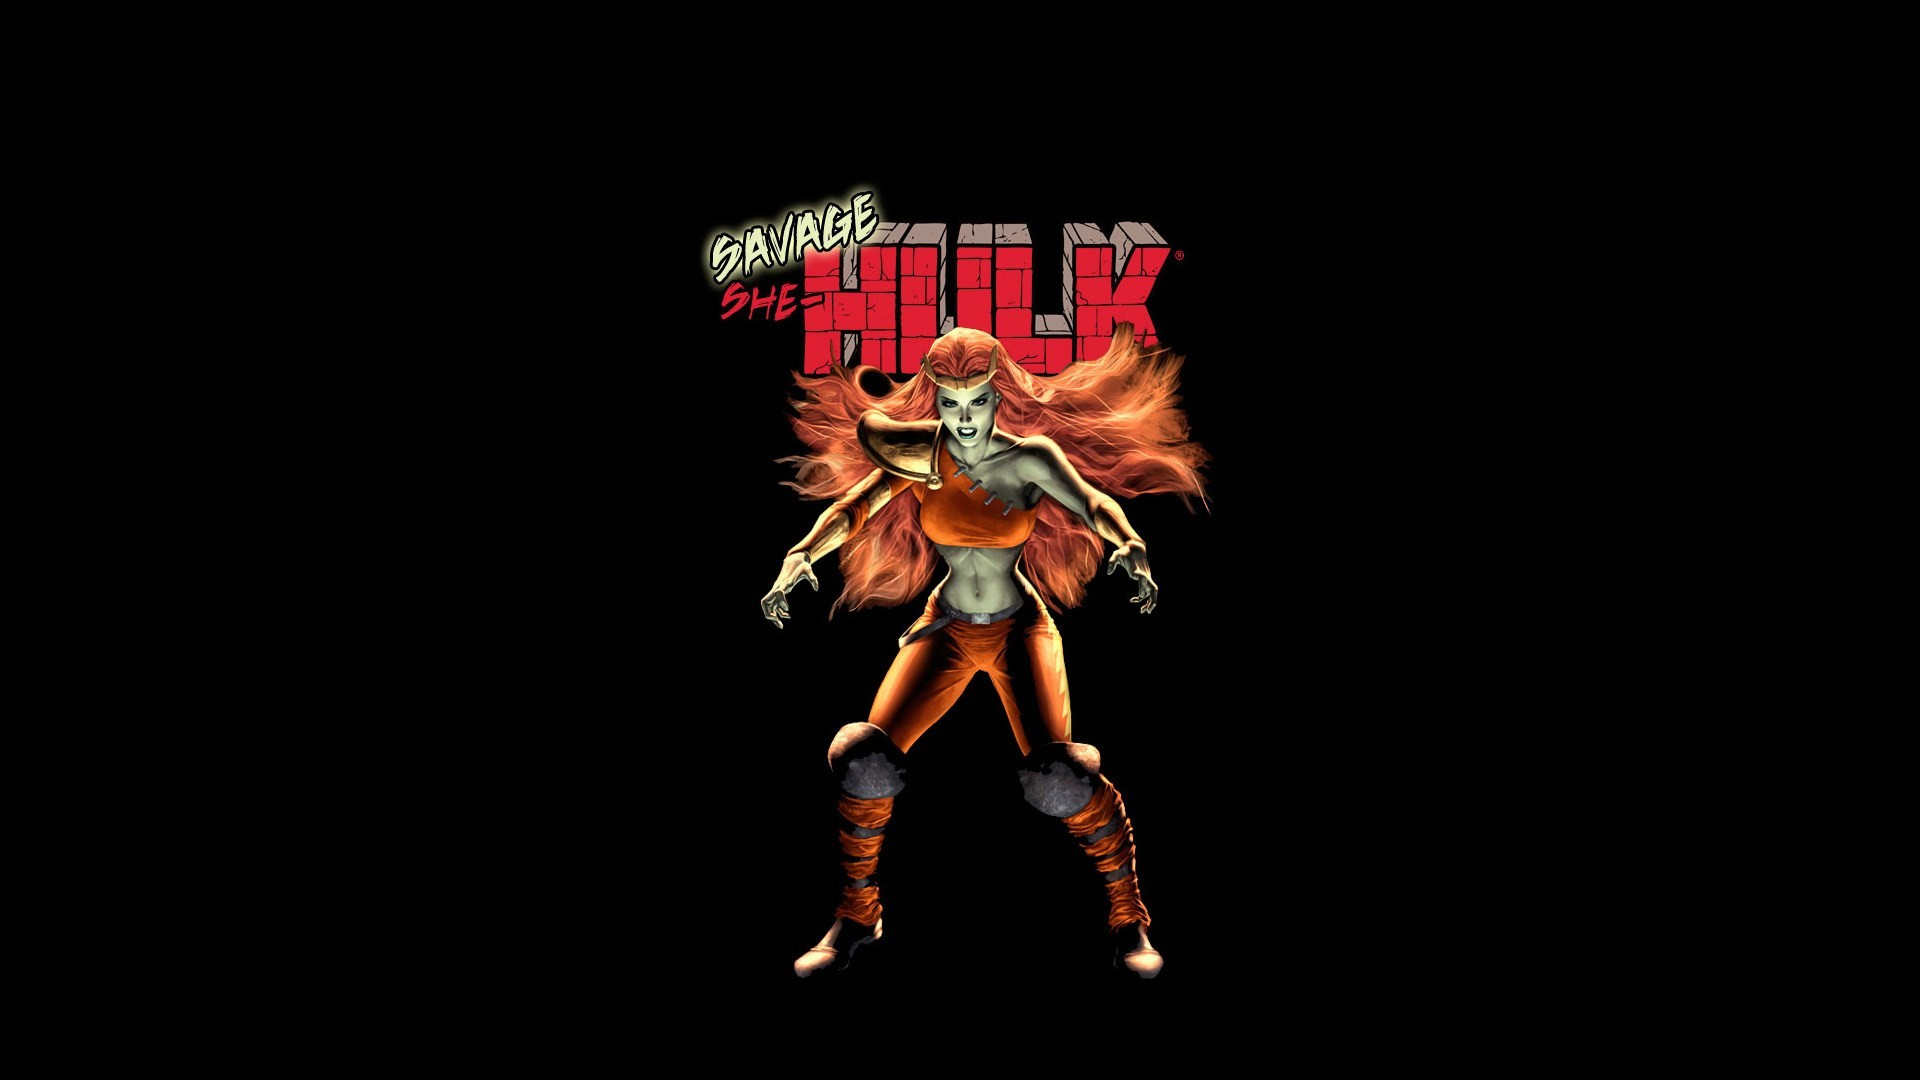 1920x1080 savage she hulk : Wallpaper Collection